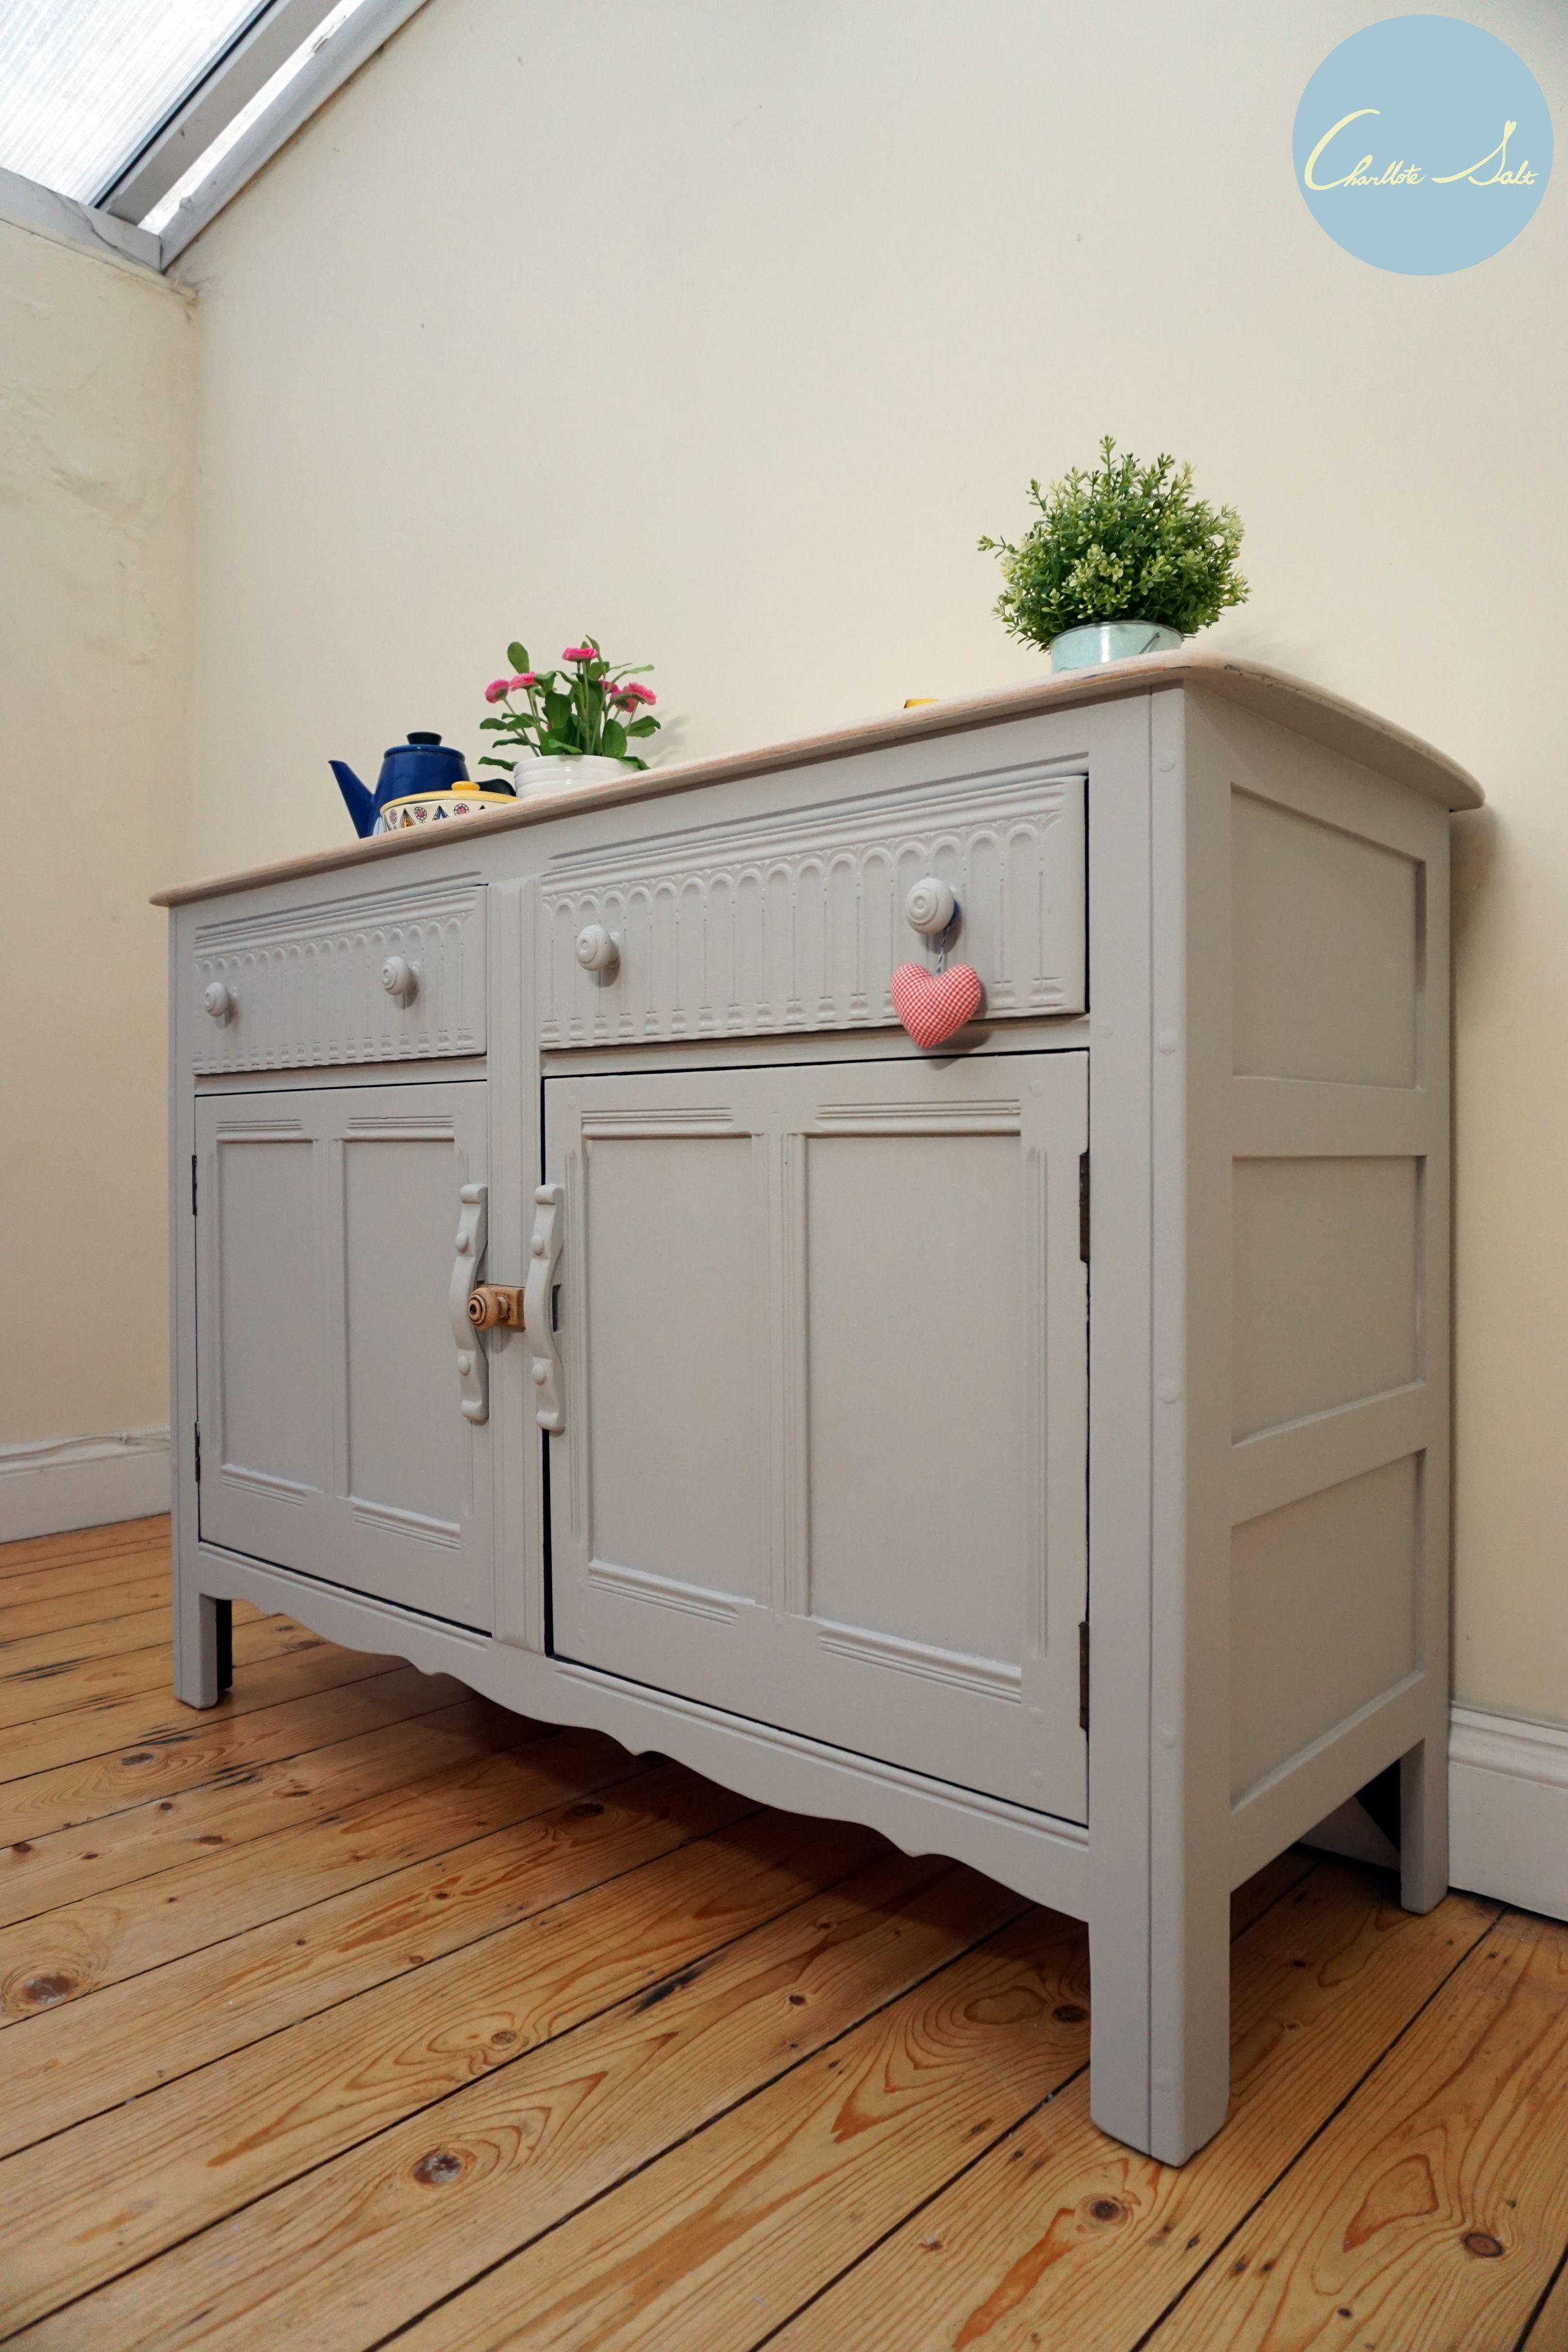 Ercol Sideboard Is Painted In Laura Ashley Dark Dove Grey